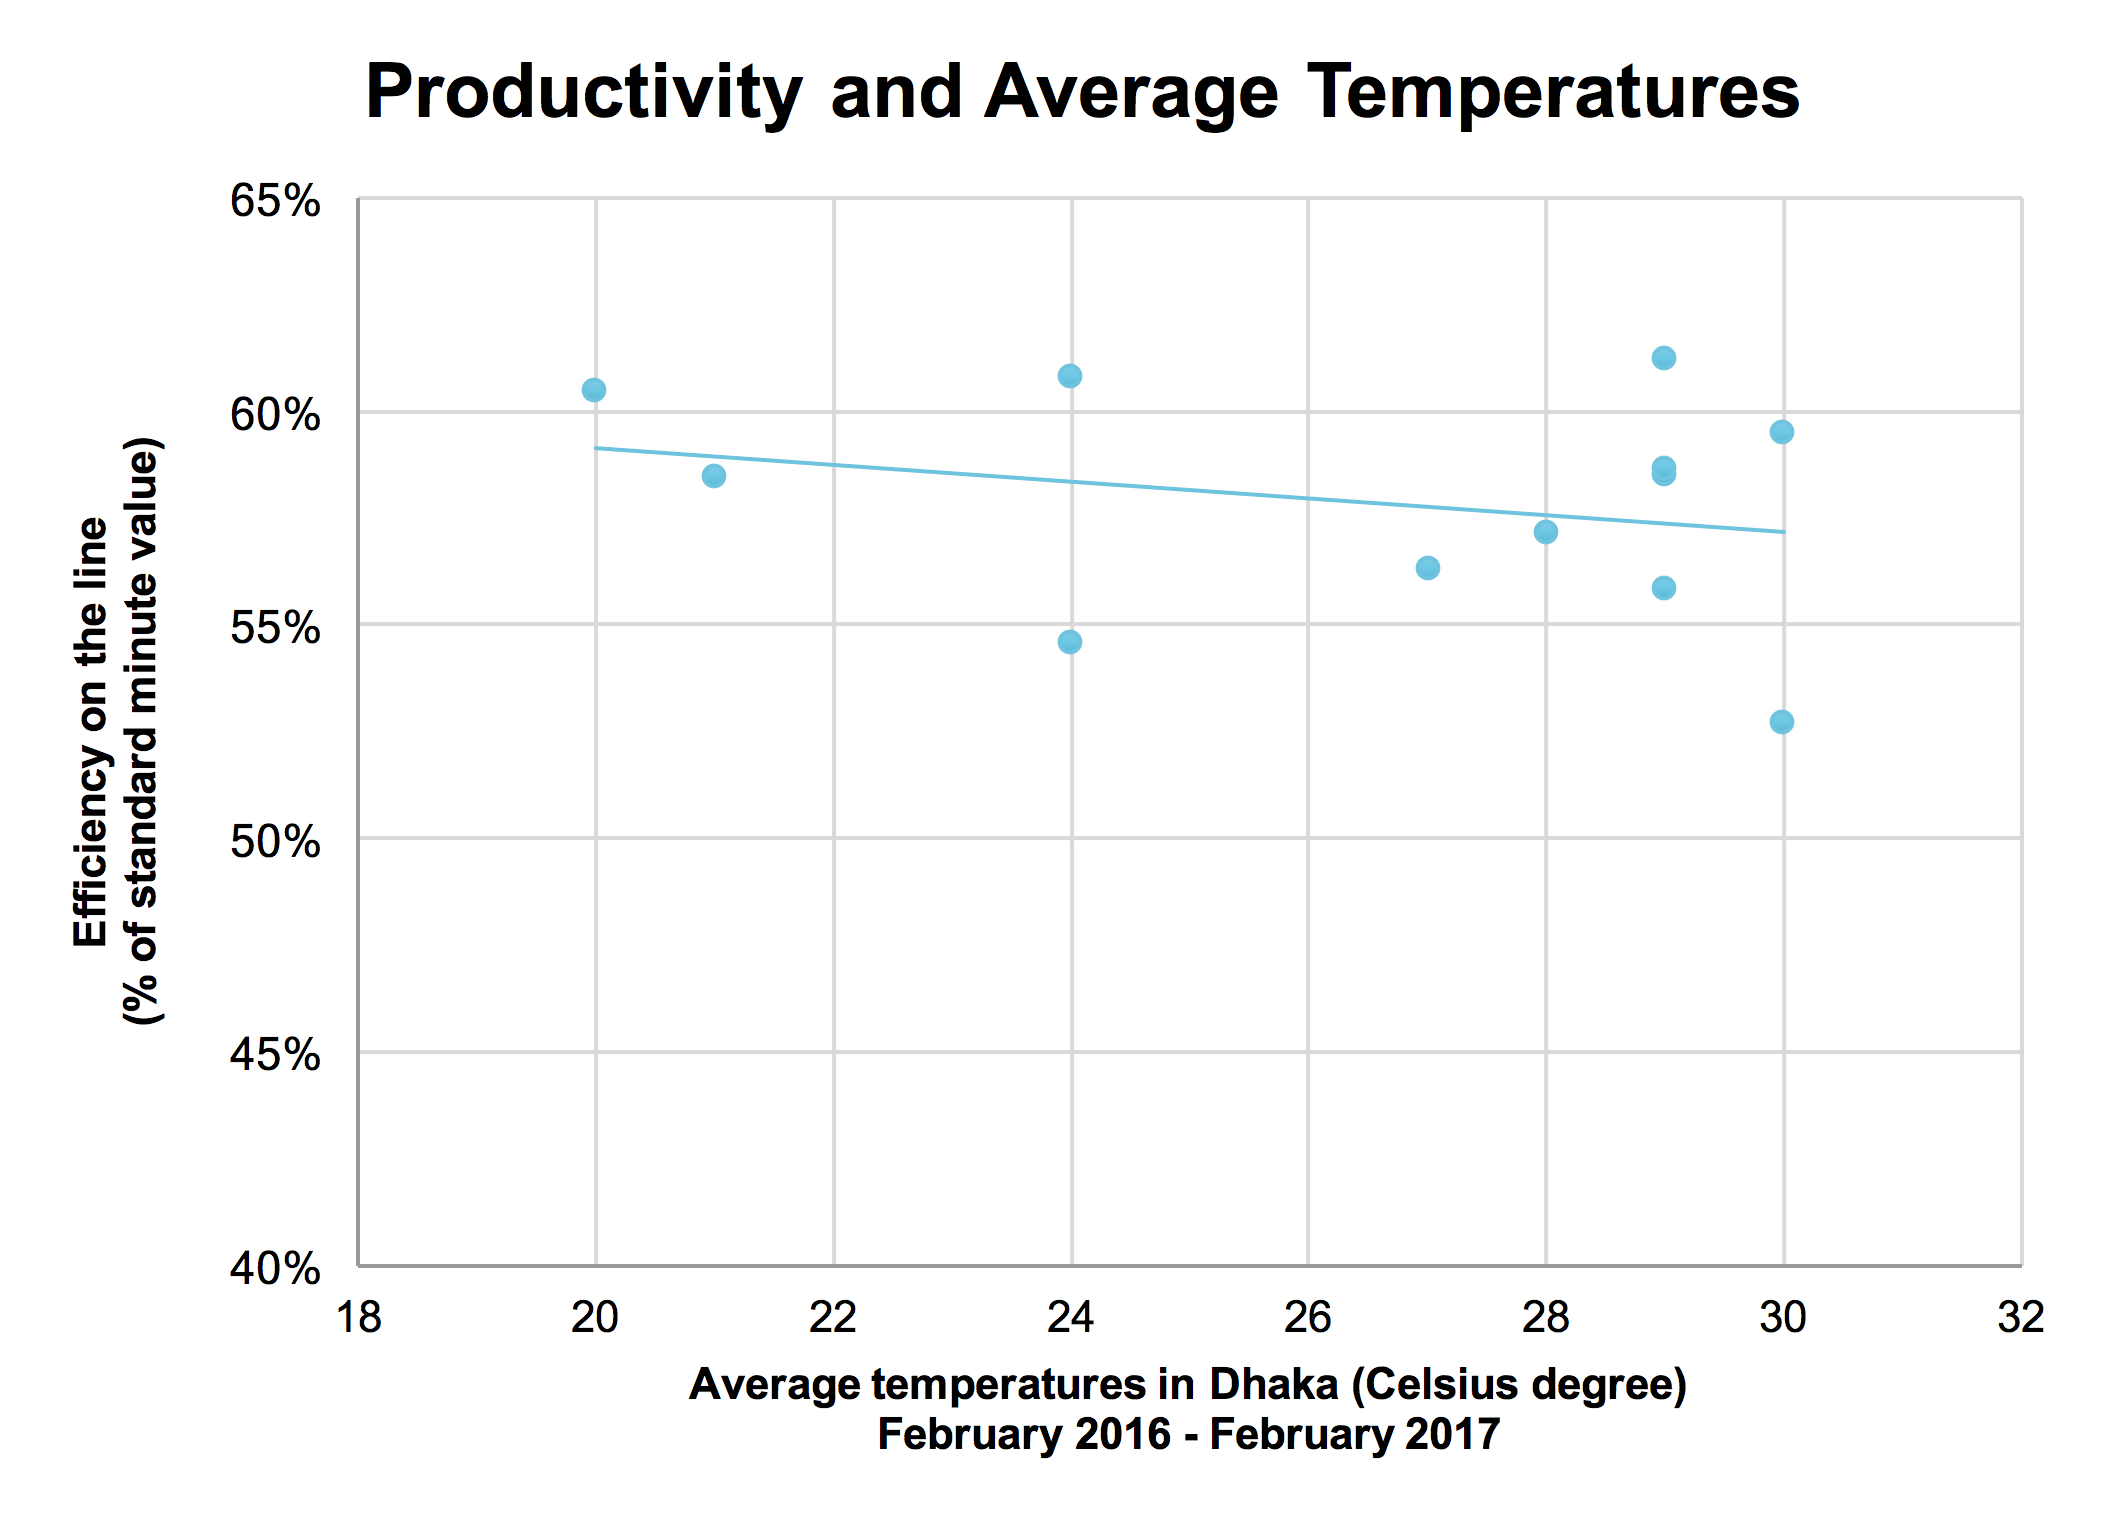 Figure 3: Productivity and Average Temperature